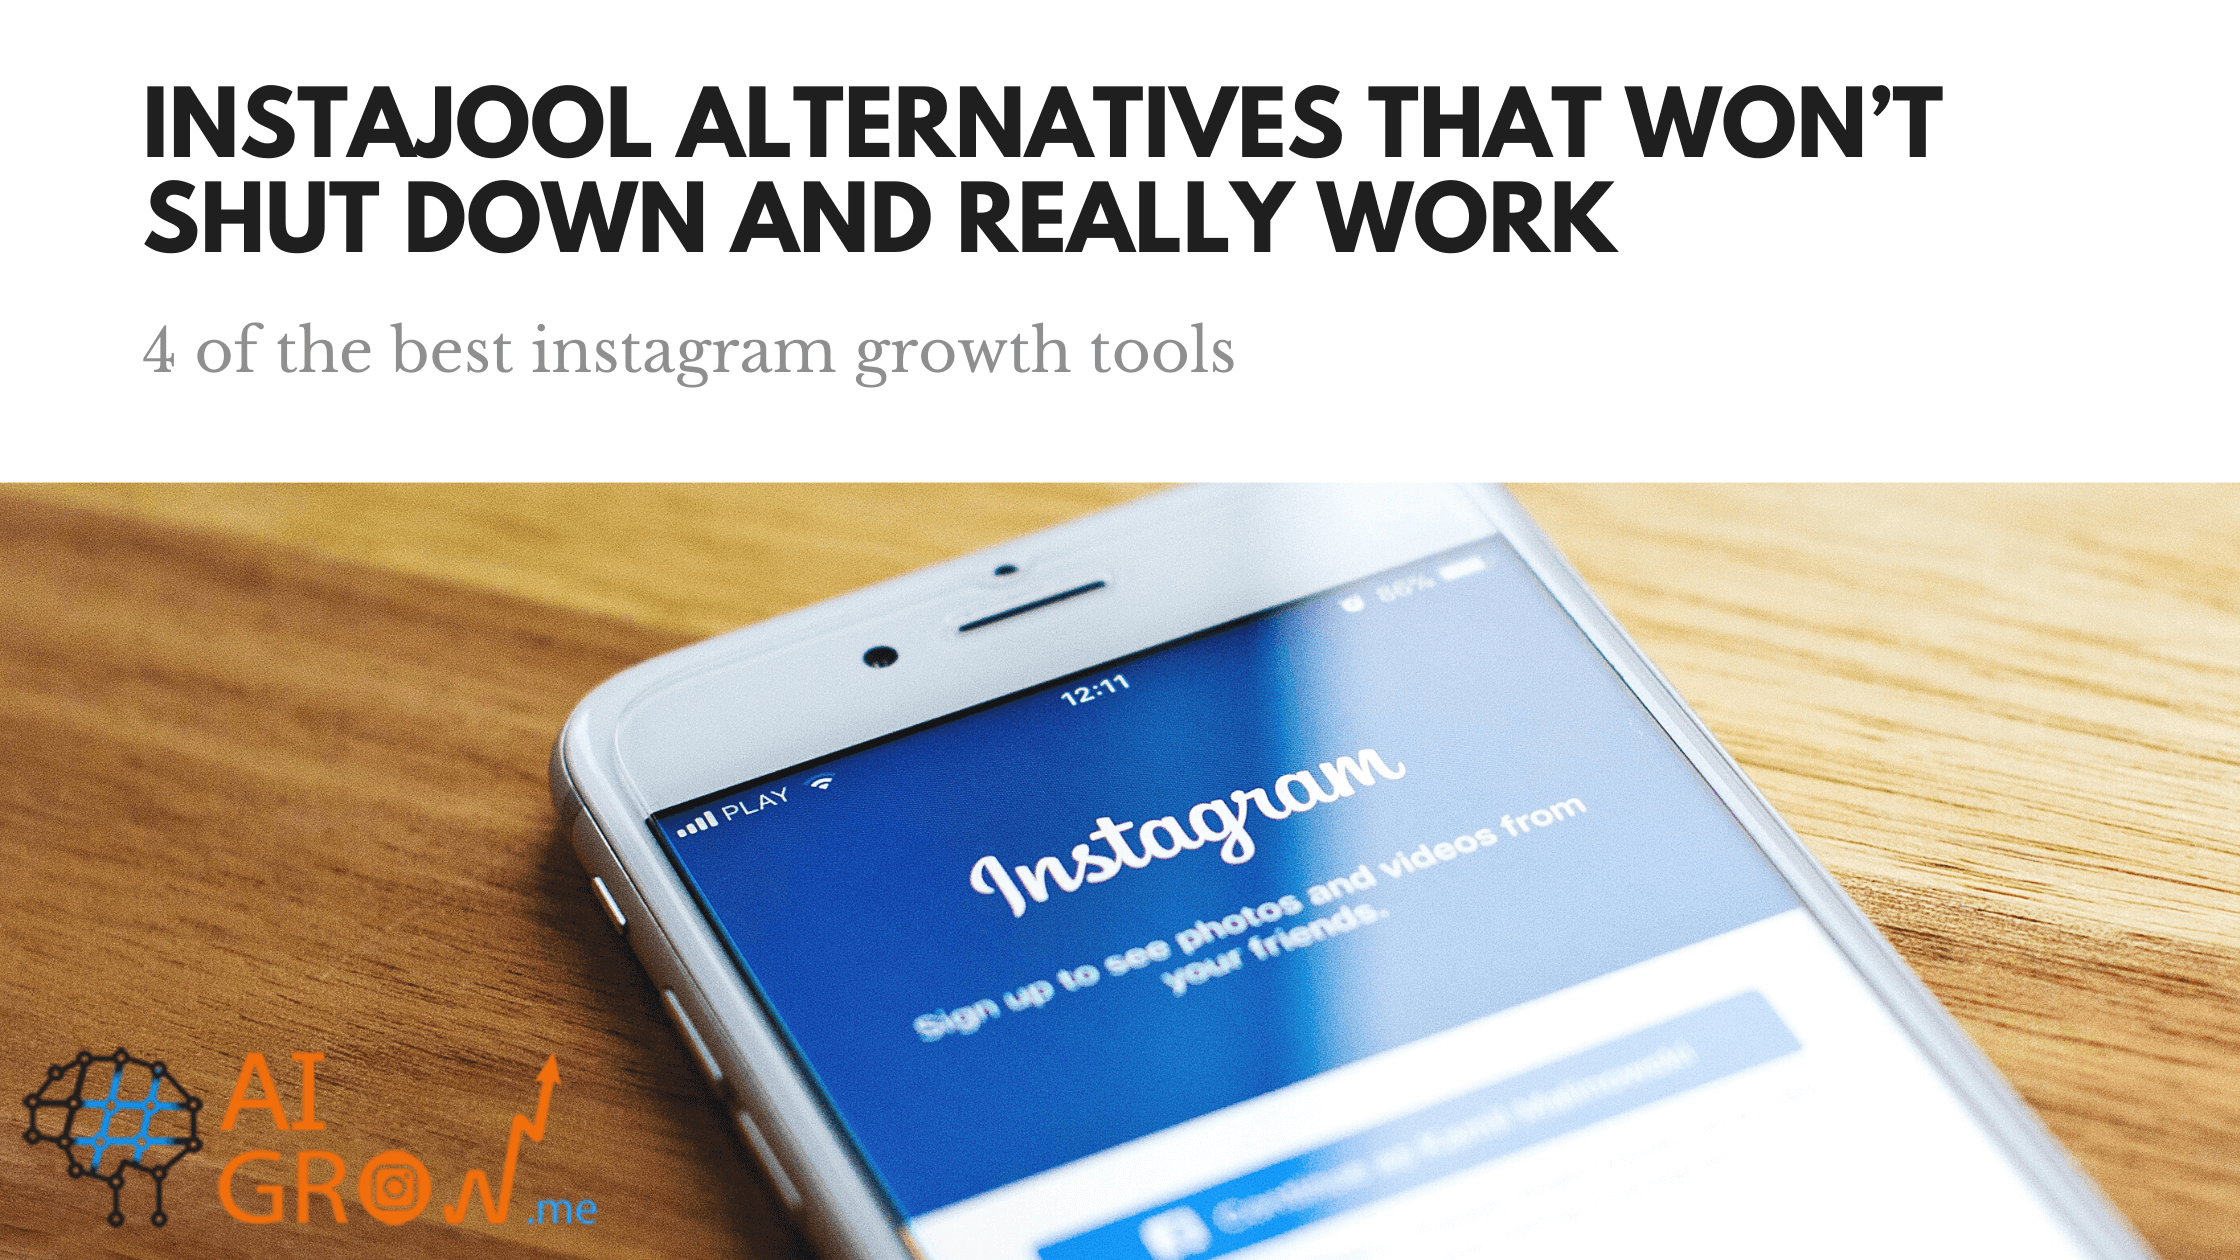 4 instajool alternatives that won't shut down and really work